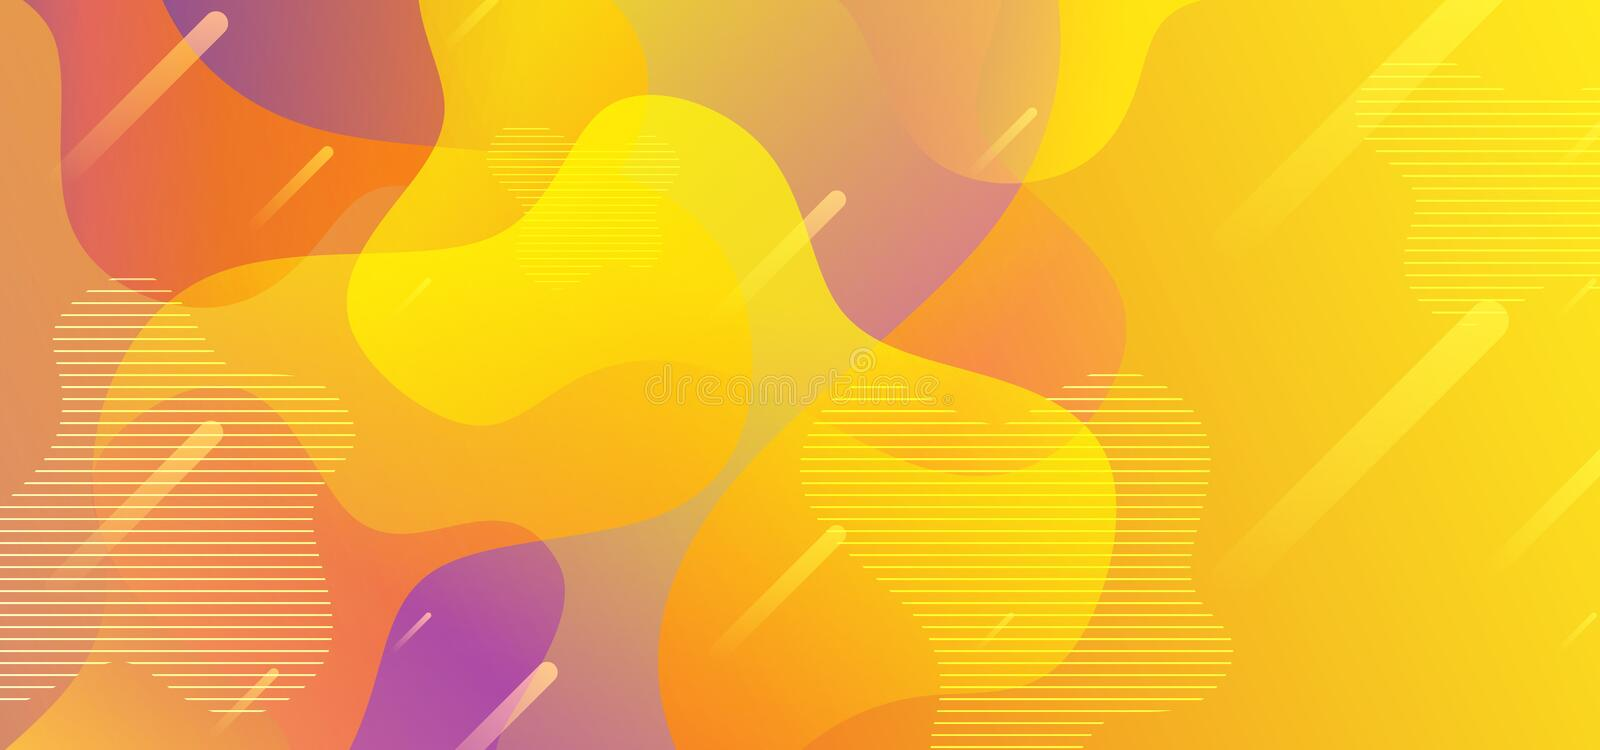 Background abstract liquid shapes with yellow flow fluid gradient colorful vector eps 10. Geometric modern trendy style. Template, curve, wave, design, graphic vector illustration